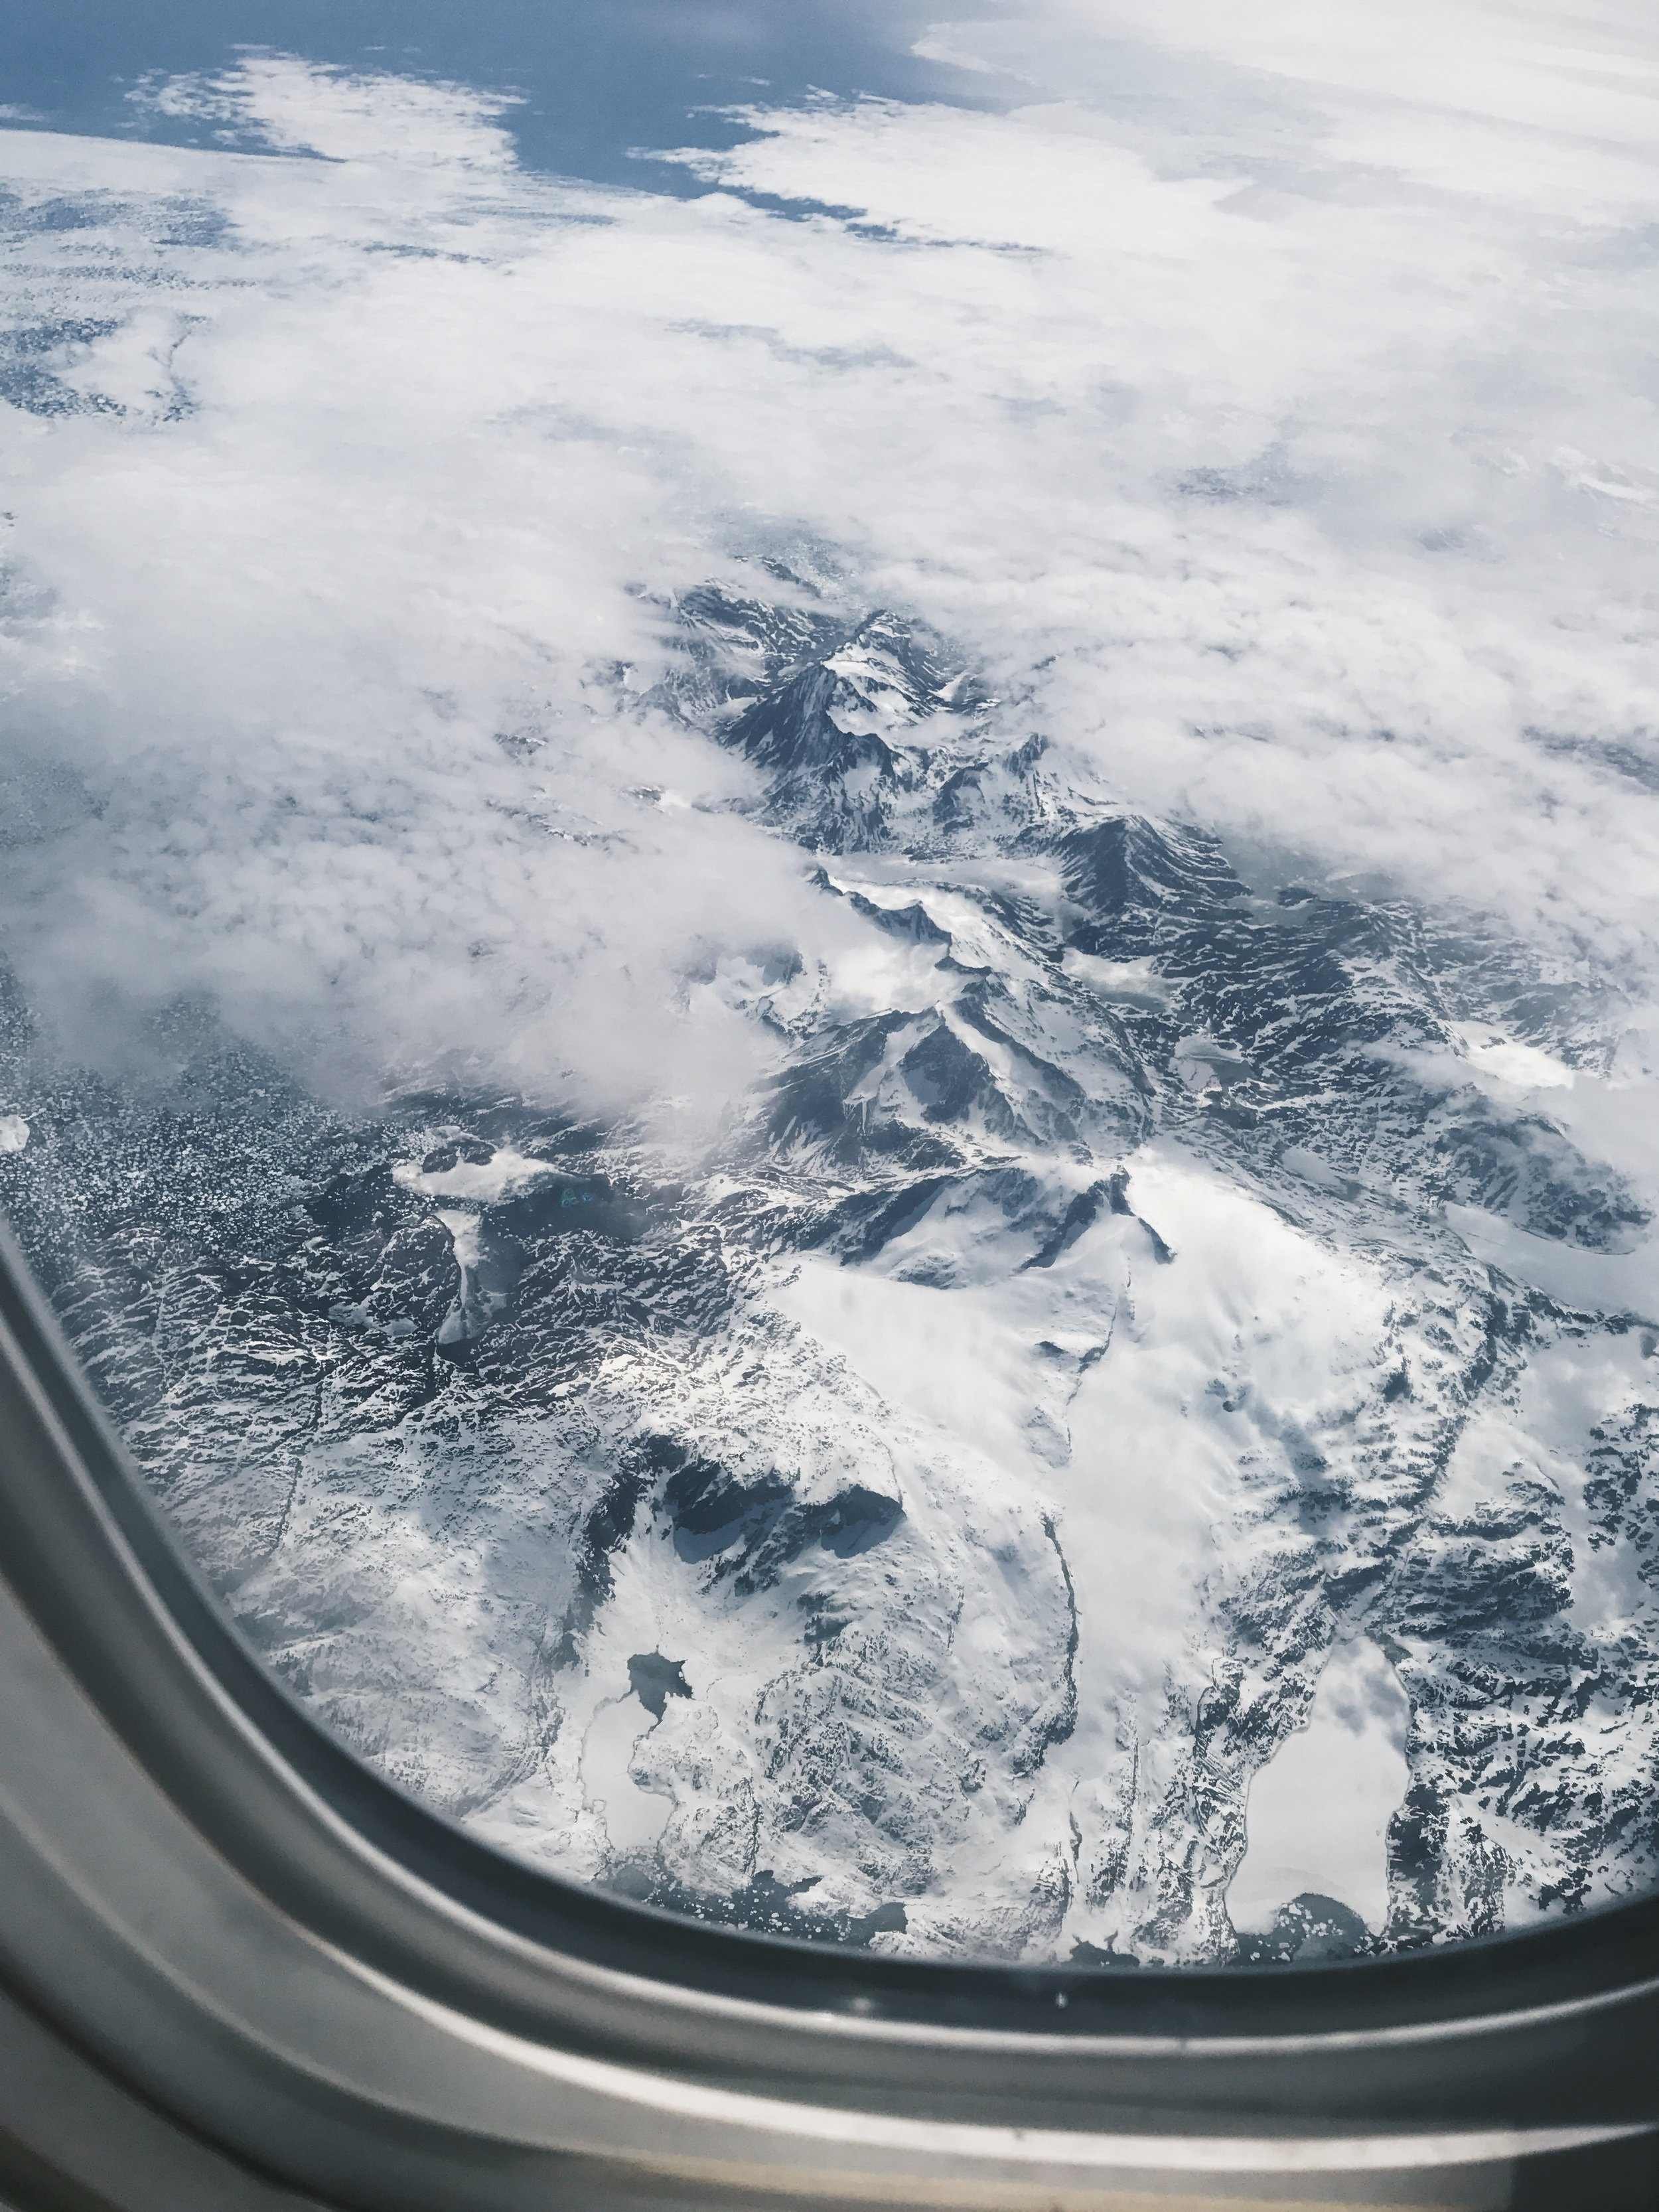 Flying over Iceland on the way home!